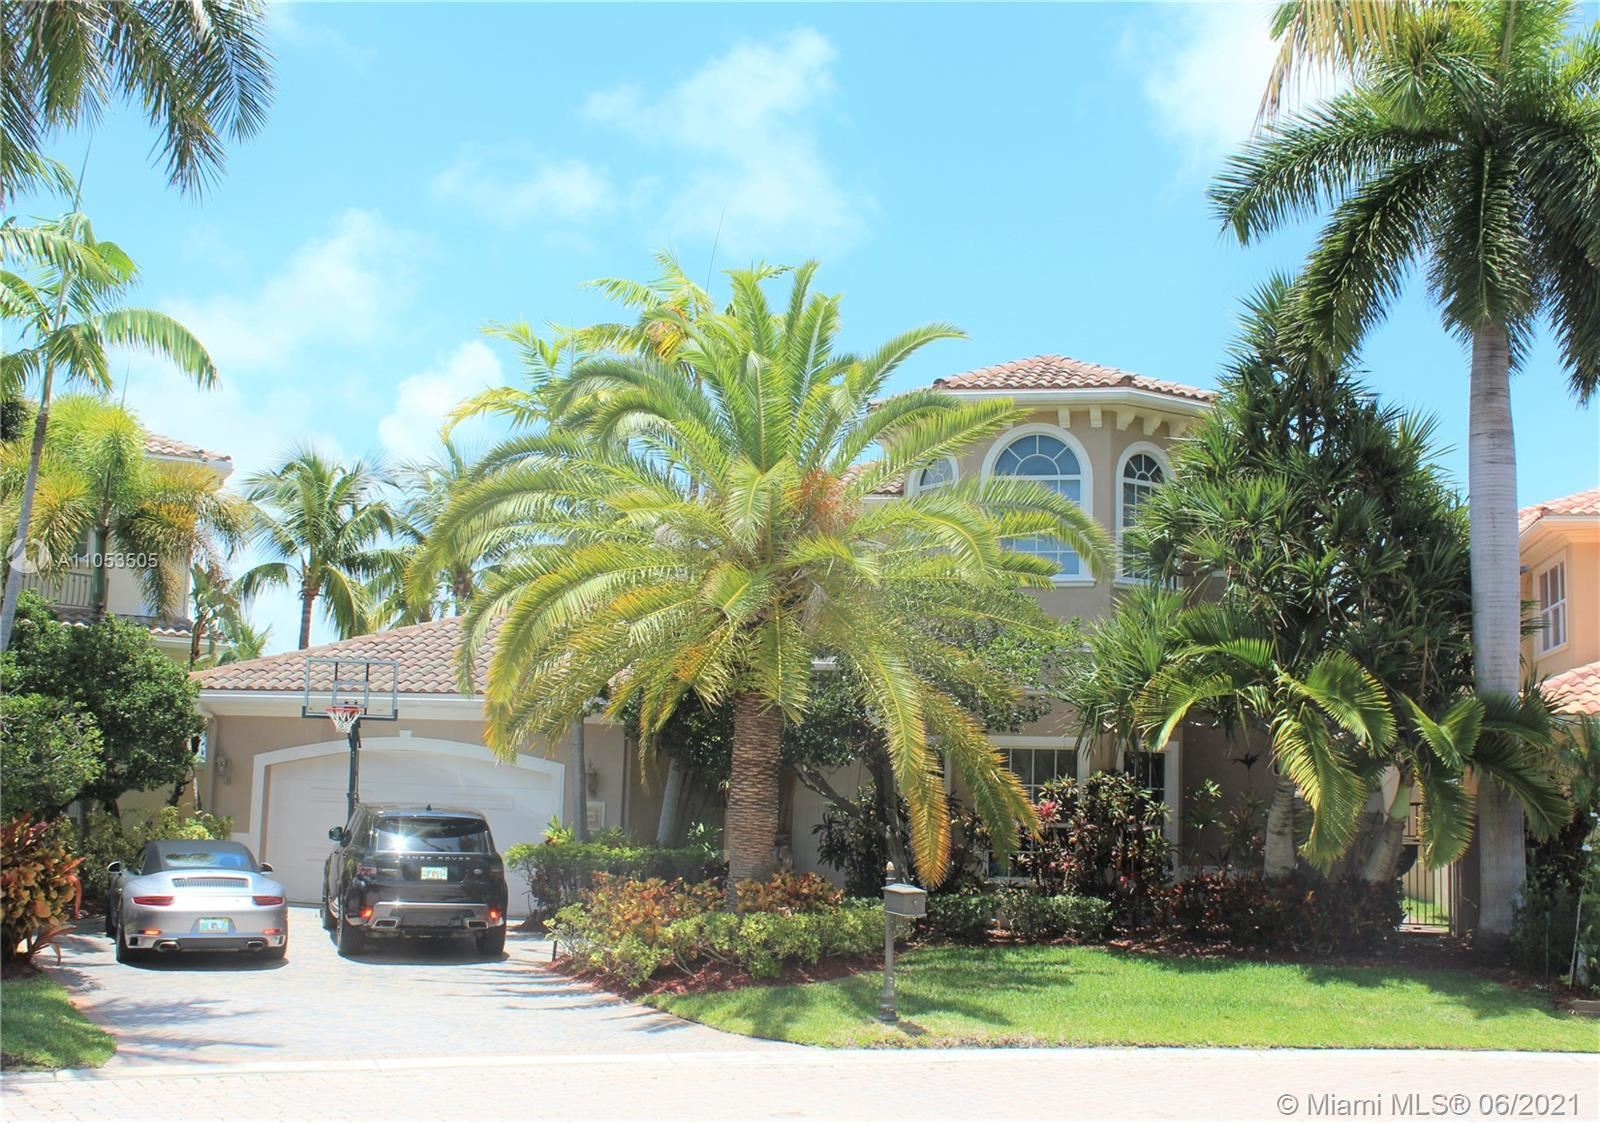 1462 Commodore Way, Hollywood, FL 33019 - #: A11053505